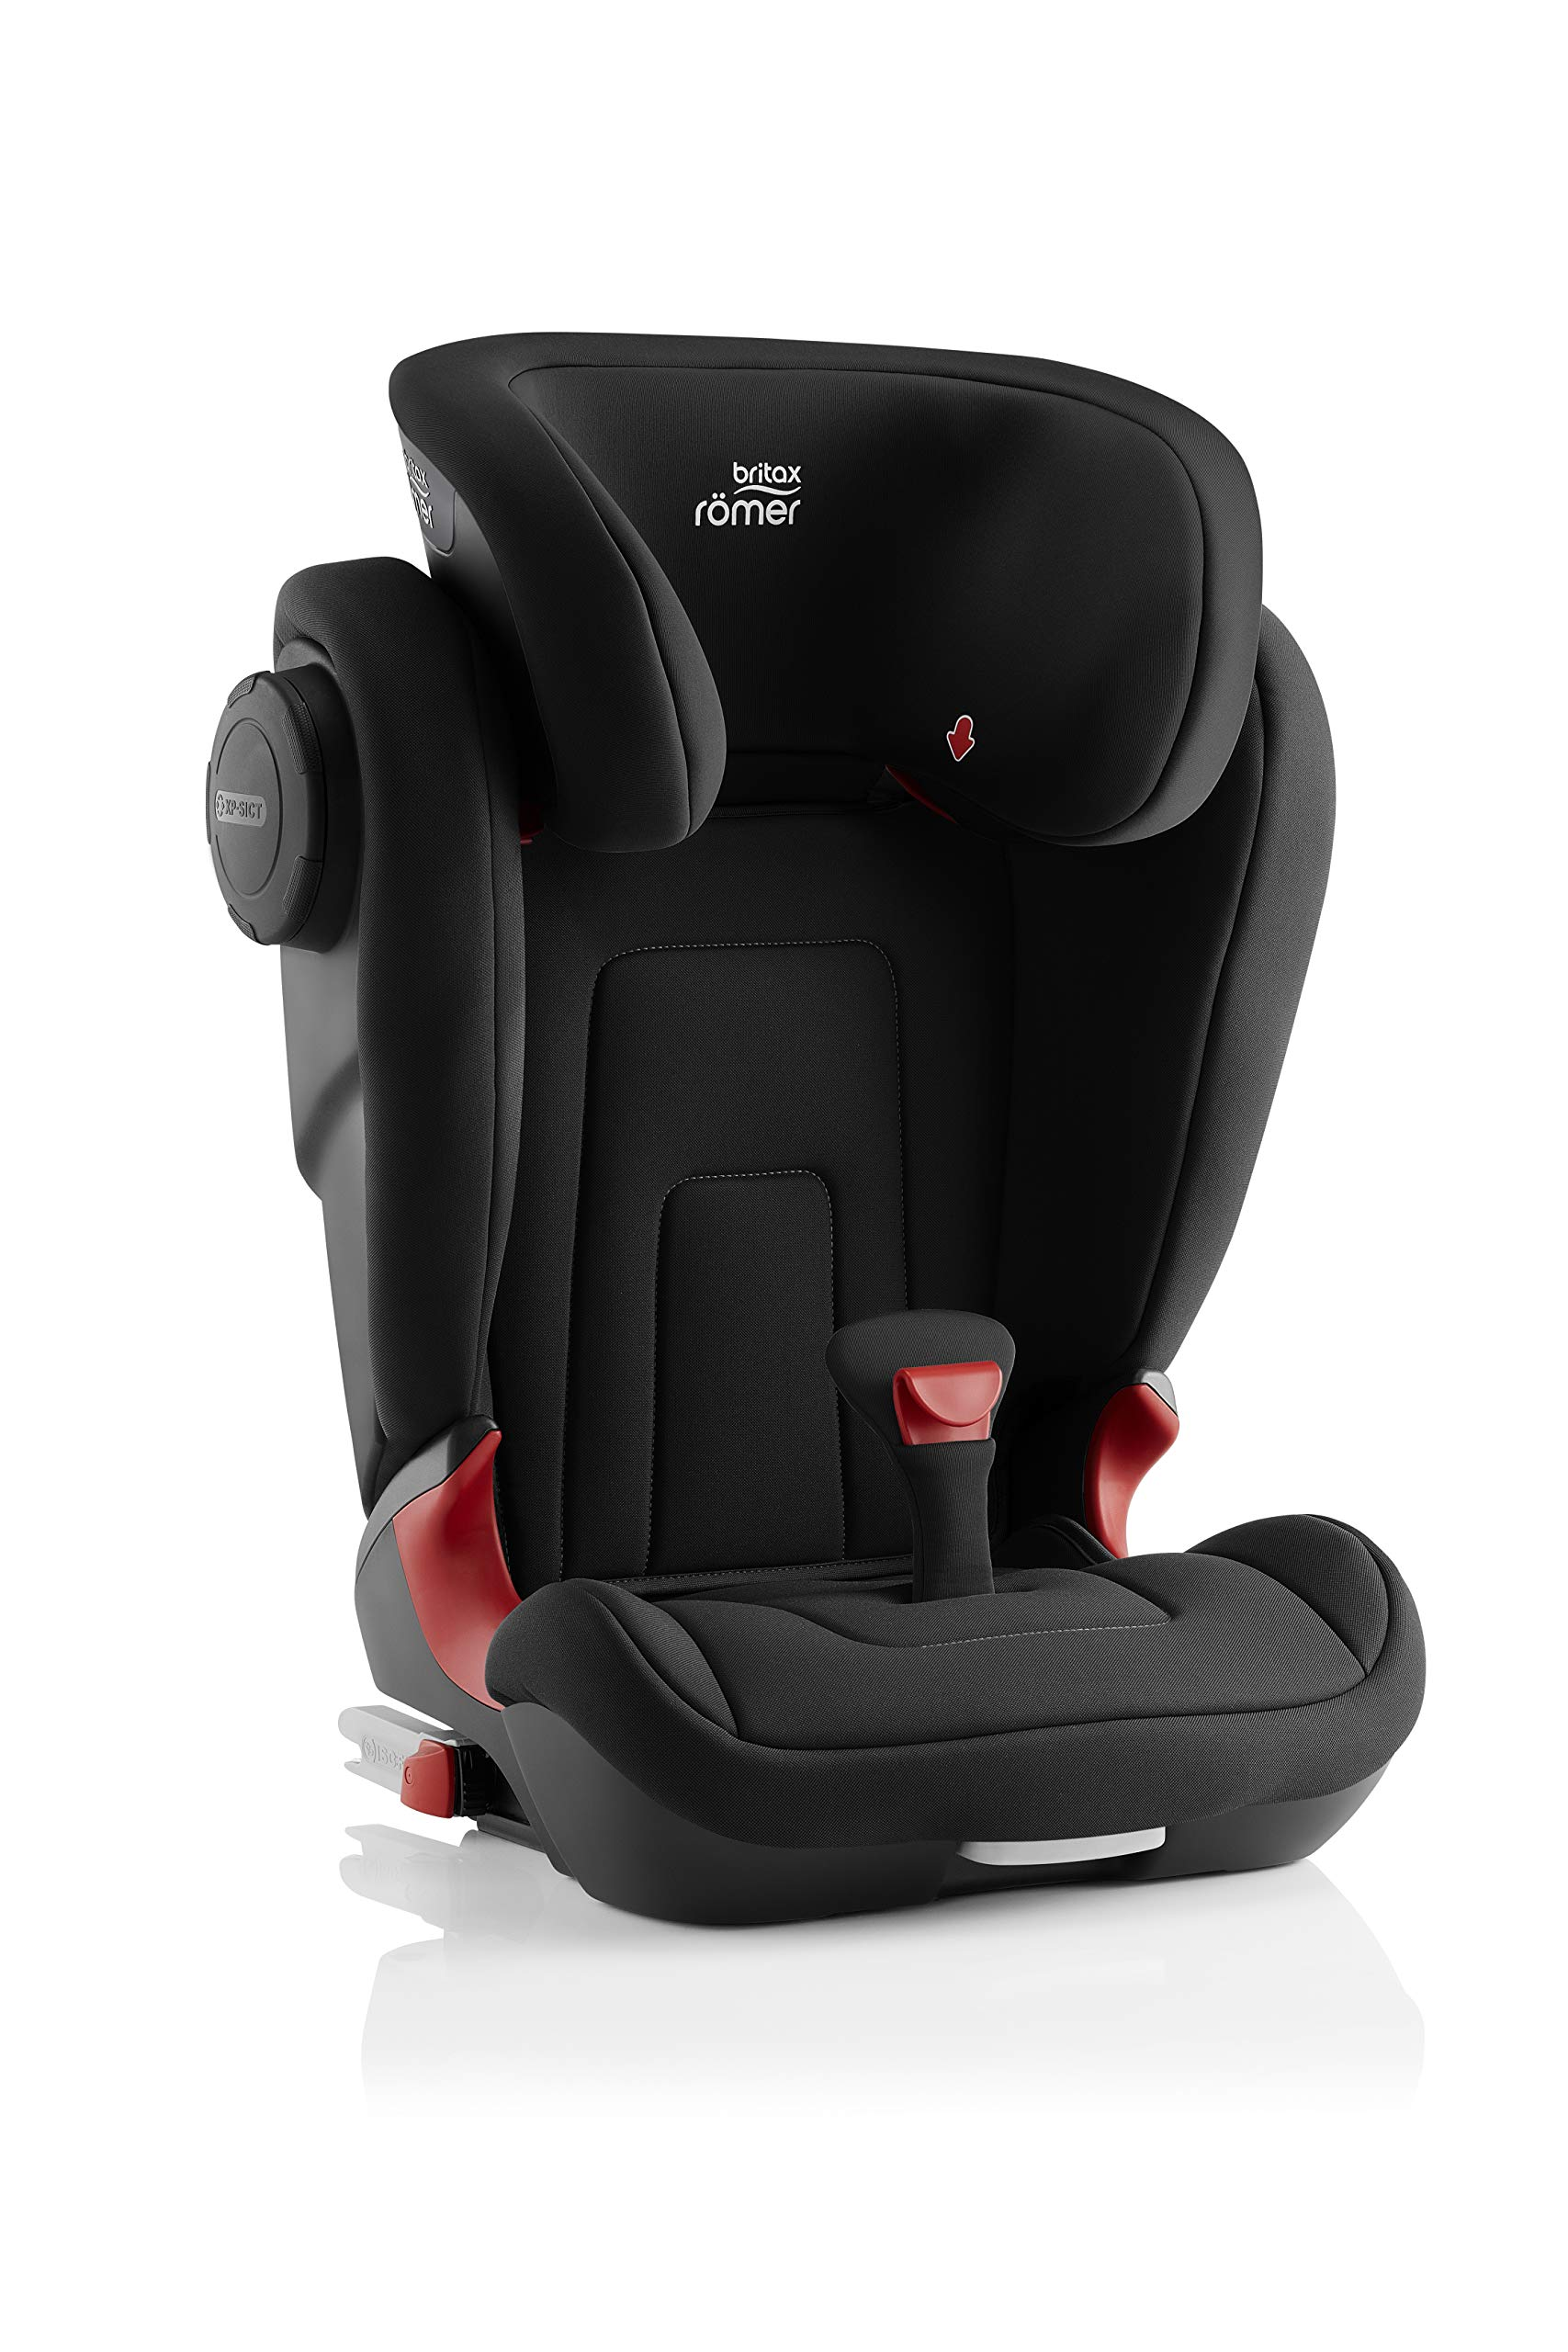 Britax Römer KIDFIX² S Group 2-3 (15-36kg) Car Seat - Cosmos Black  Advanced side impact protection - sict offers superior protection to your child in the event of a side collision. reducing impact forces by minimising the distance between the car and the car seat. Secure guard - helps to protect your child's delicate abdominal area by adding an extra - a 4th - contact point to the 3-point seat belt. High back booster - protects your child in 3 ways: provides head to hip protection; belt guides provide correct positioning of the seat belt and the padded headrest provides safety and comfort. 3